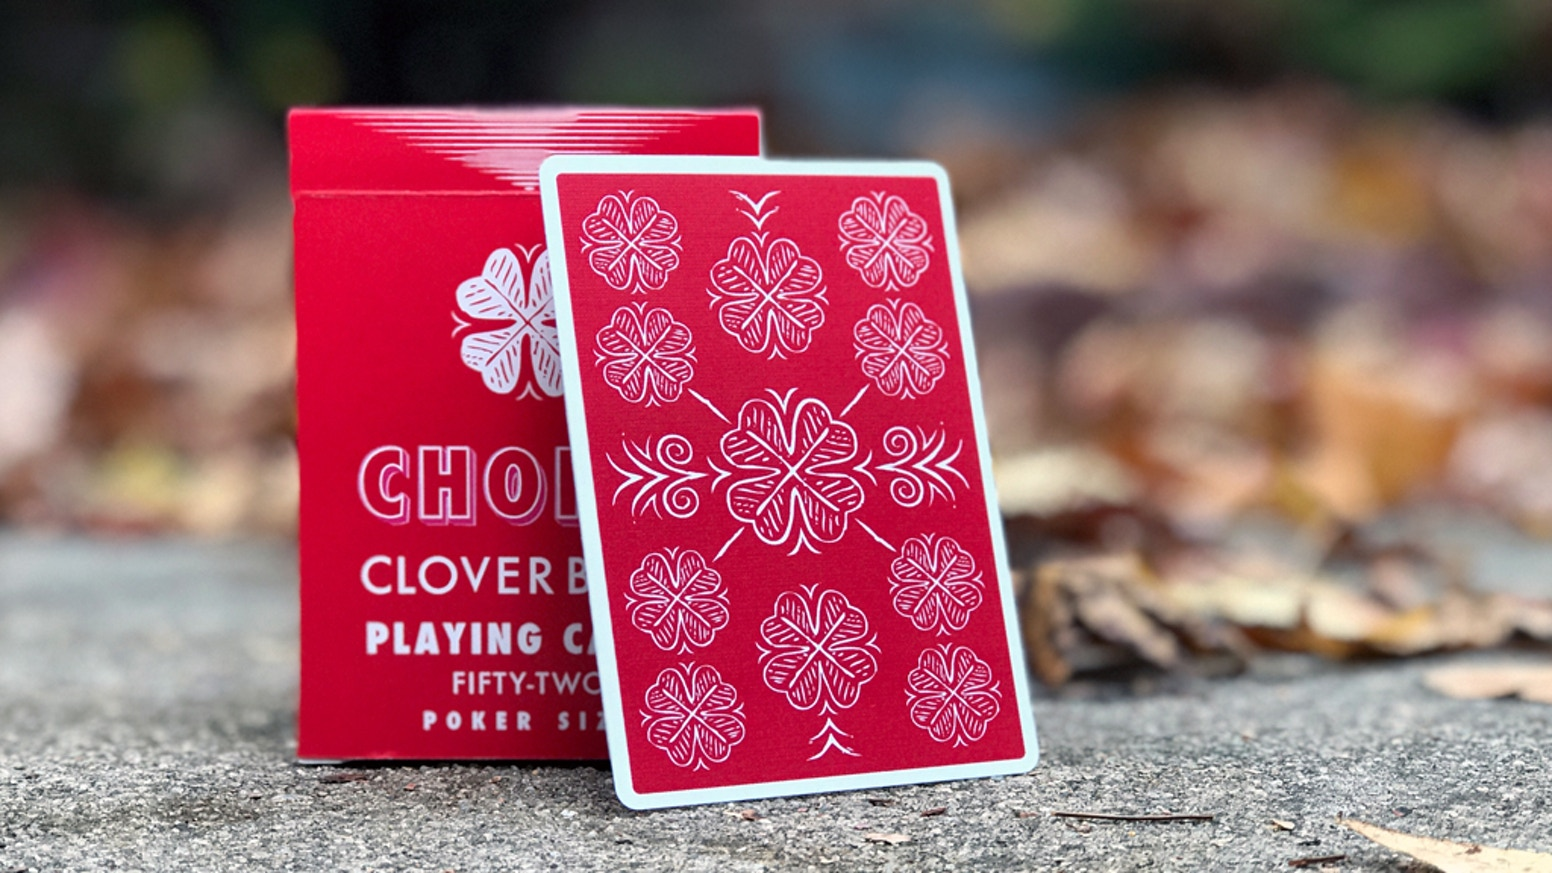 Choice Cloverback Playing Cards Designed by Ben Kolozsi by Penguin ...